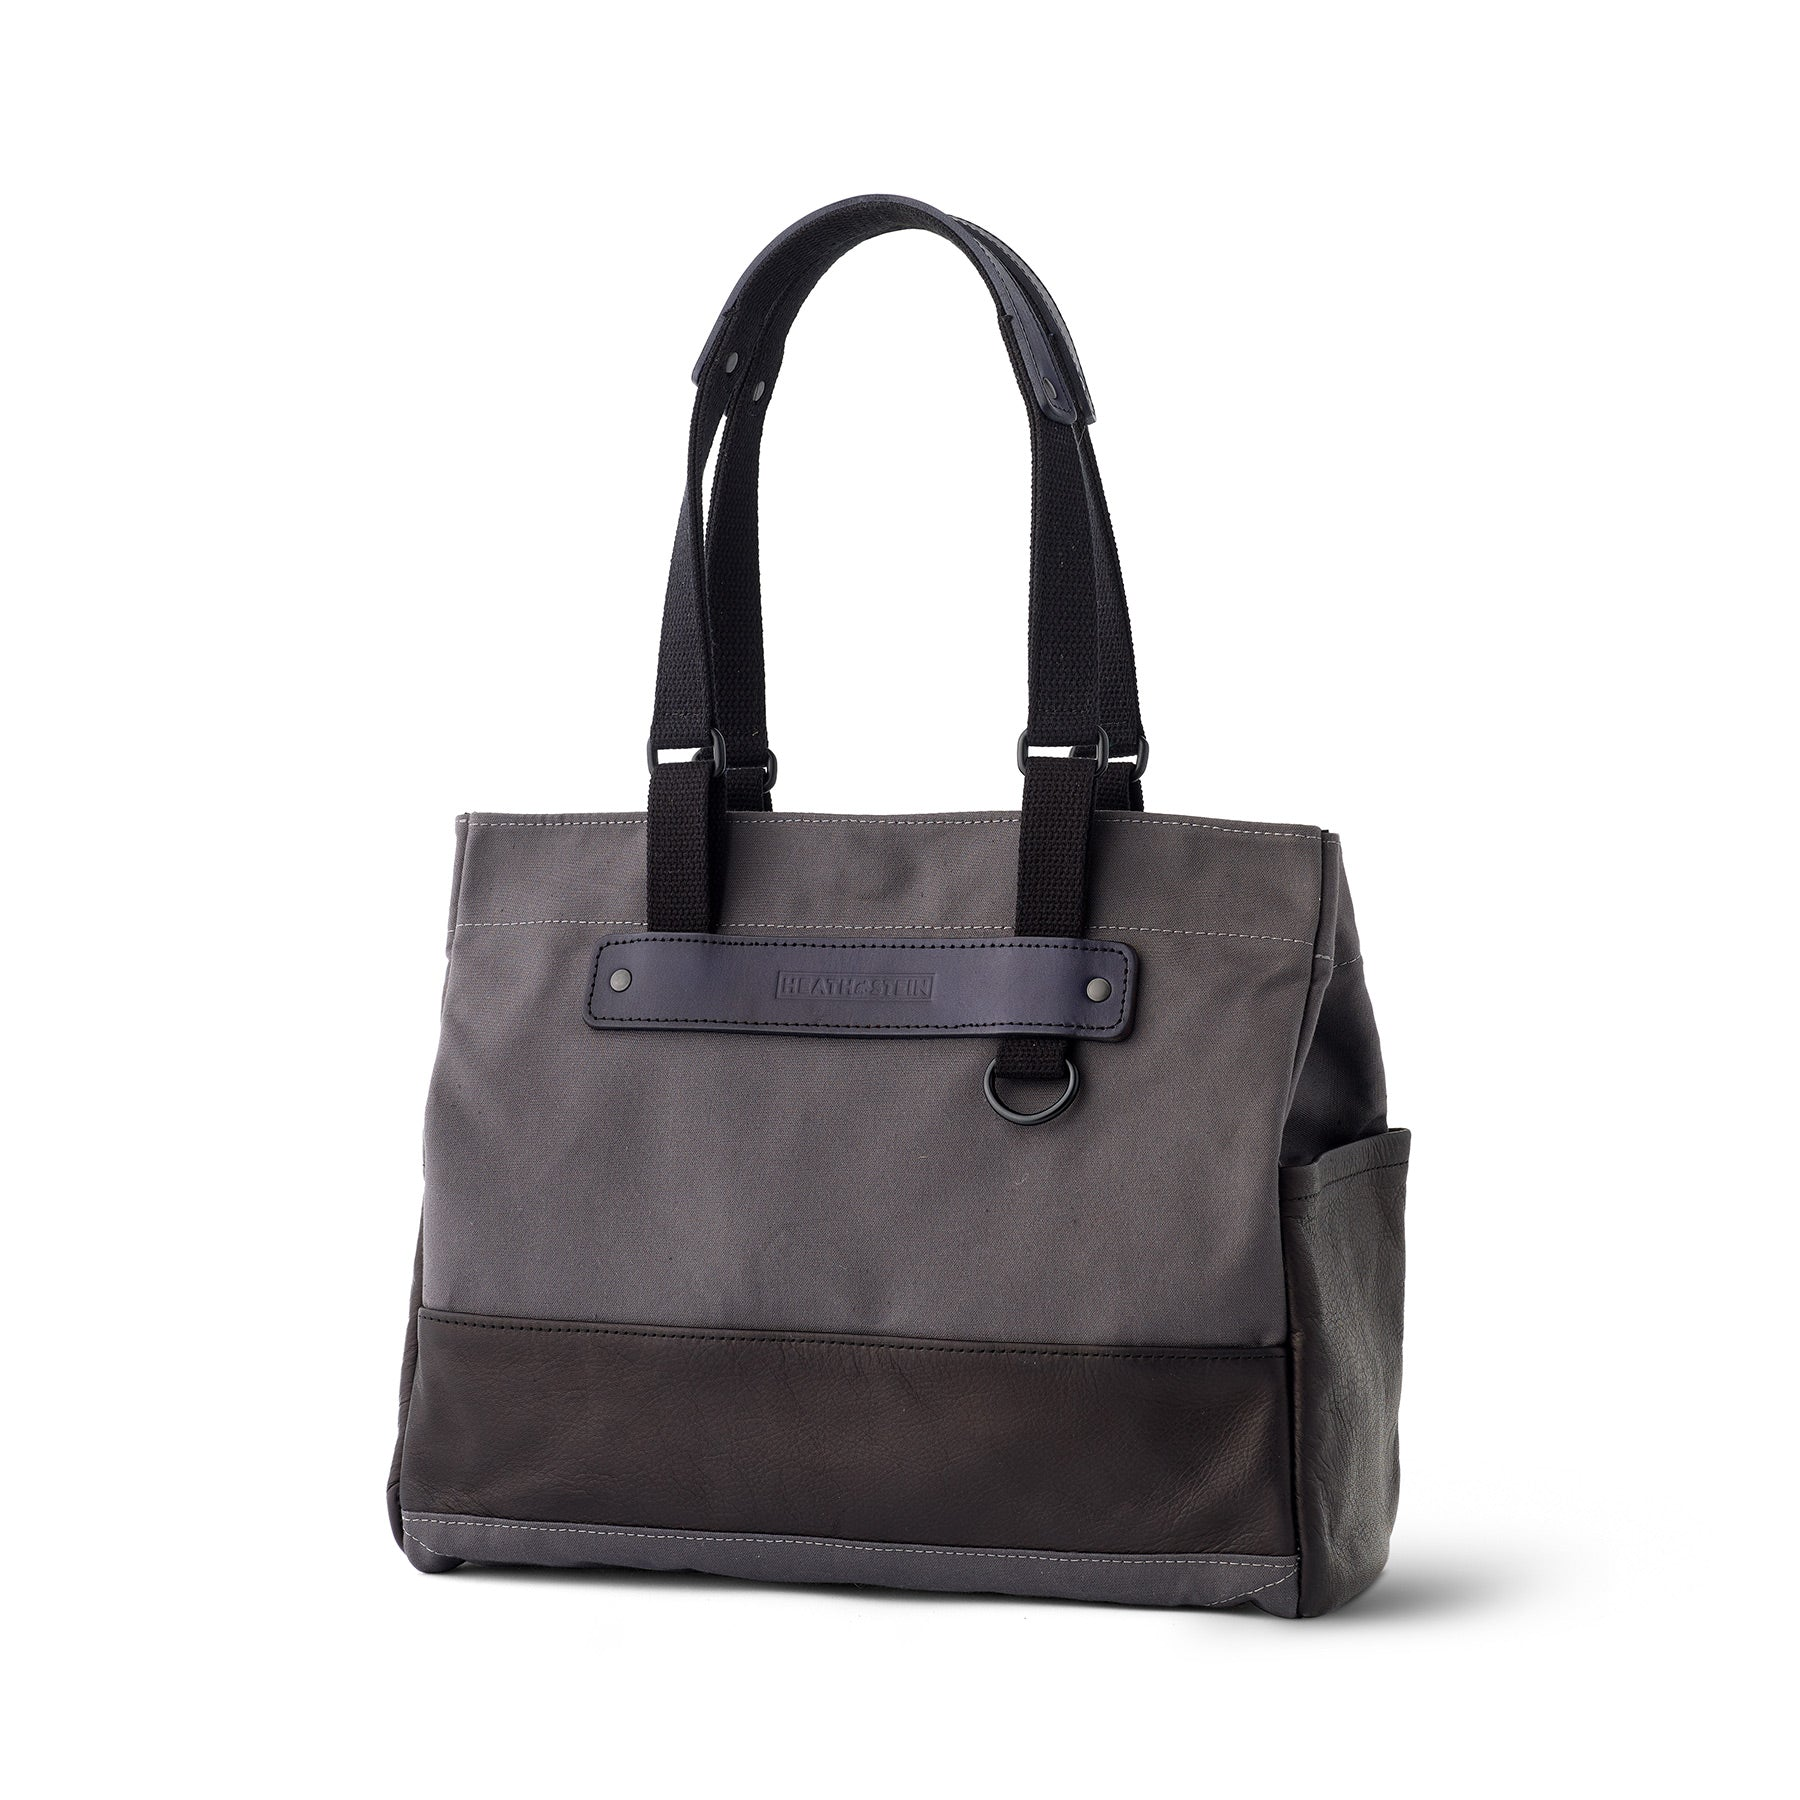 Heath + Stein Union Tote in Gunmetal Zoom Image 1